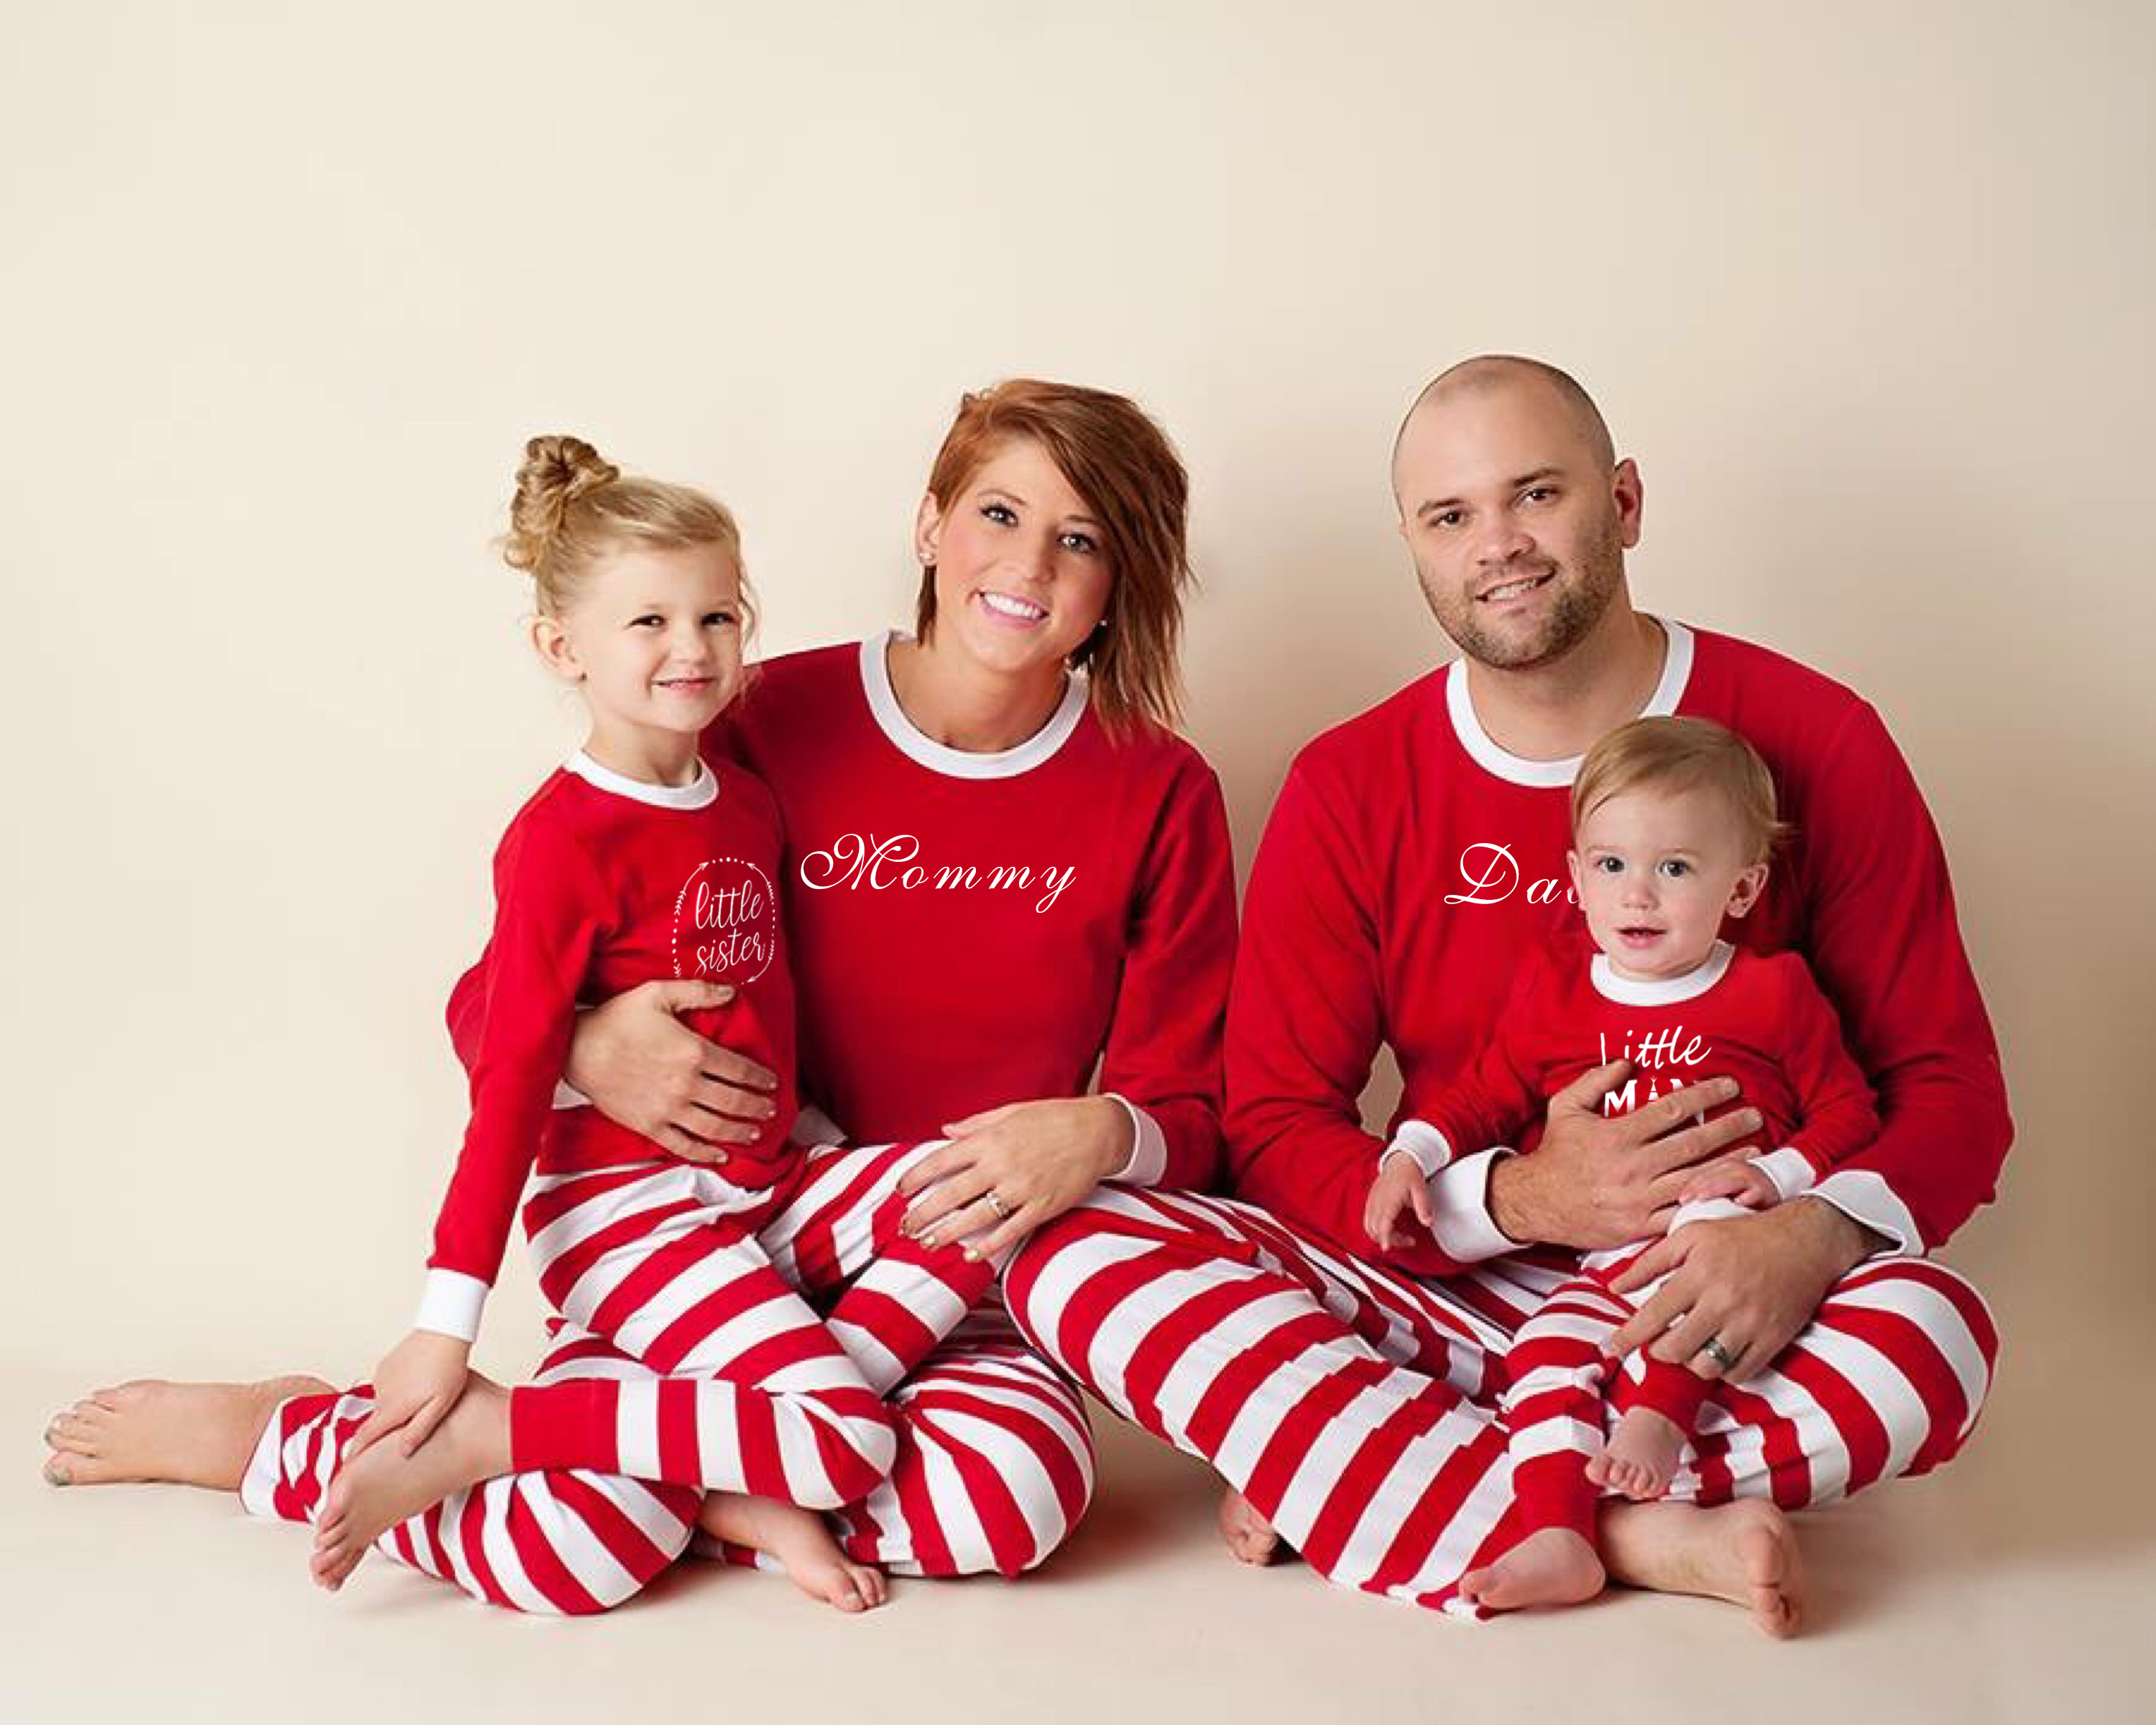 1f6525e4ad Hot Family Matching Christmas Red Striped Pajamas Set Mommy Daddy Kids Xmas  New Year Sleepwear Nightwear Outfits Christmas Gift